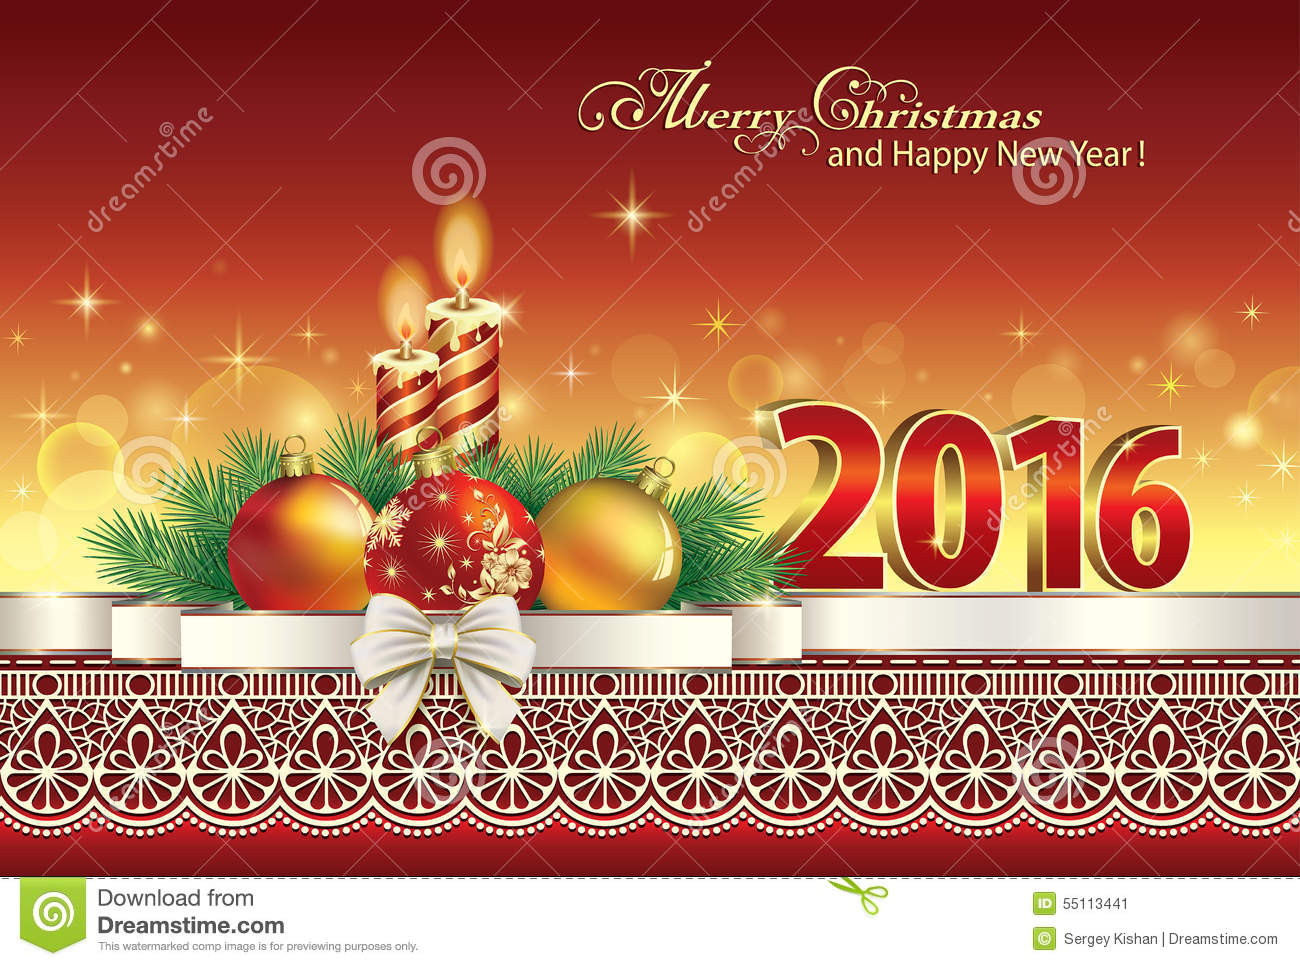 free christmas greeting card templates 2016 Best Template Design E6rzE9TI